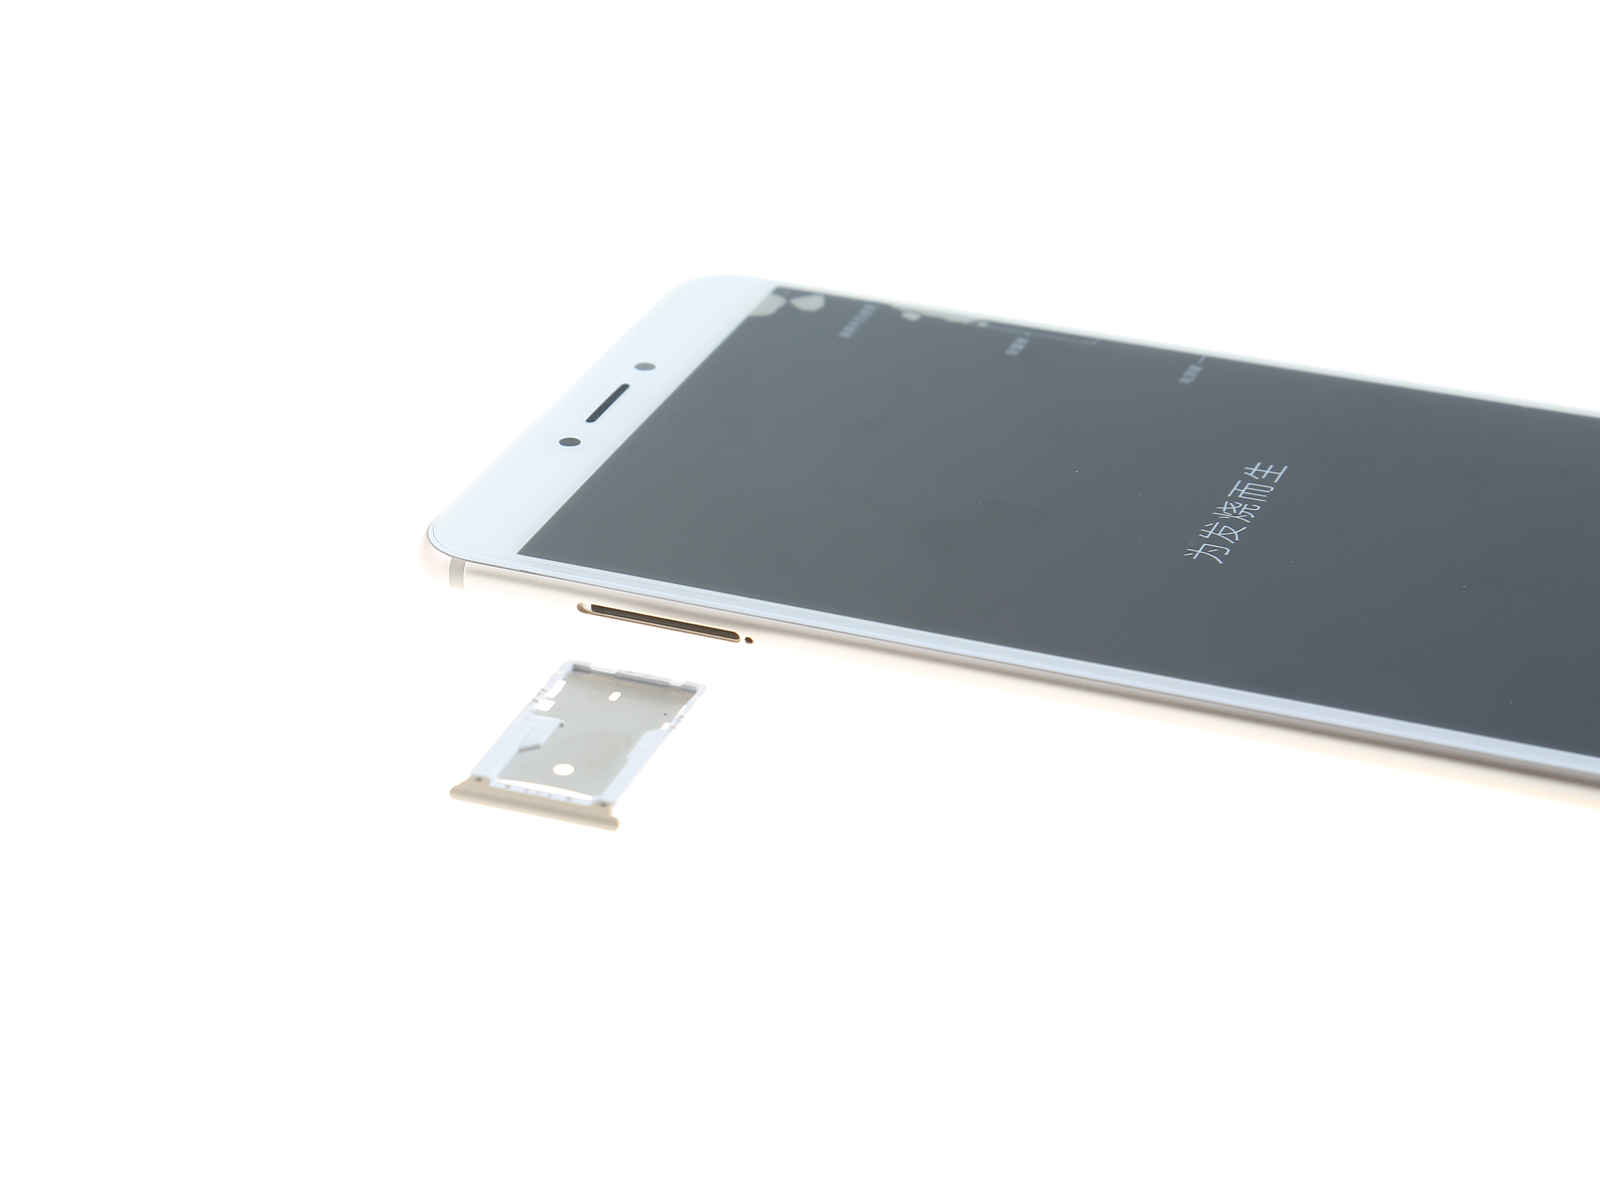 Xiaomi Mi Max 2 Back Cover Removal Replacement Powered Off Your And Remove The Sim Card Tray With Eject Tool